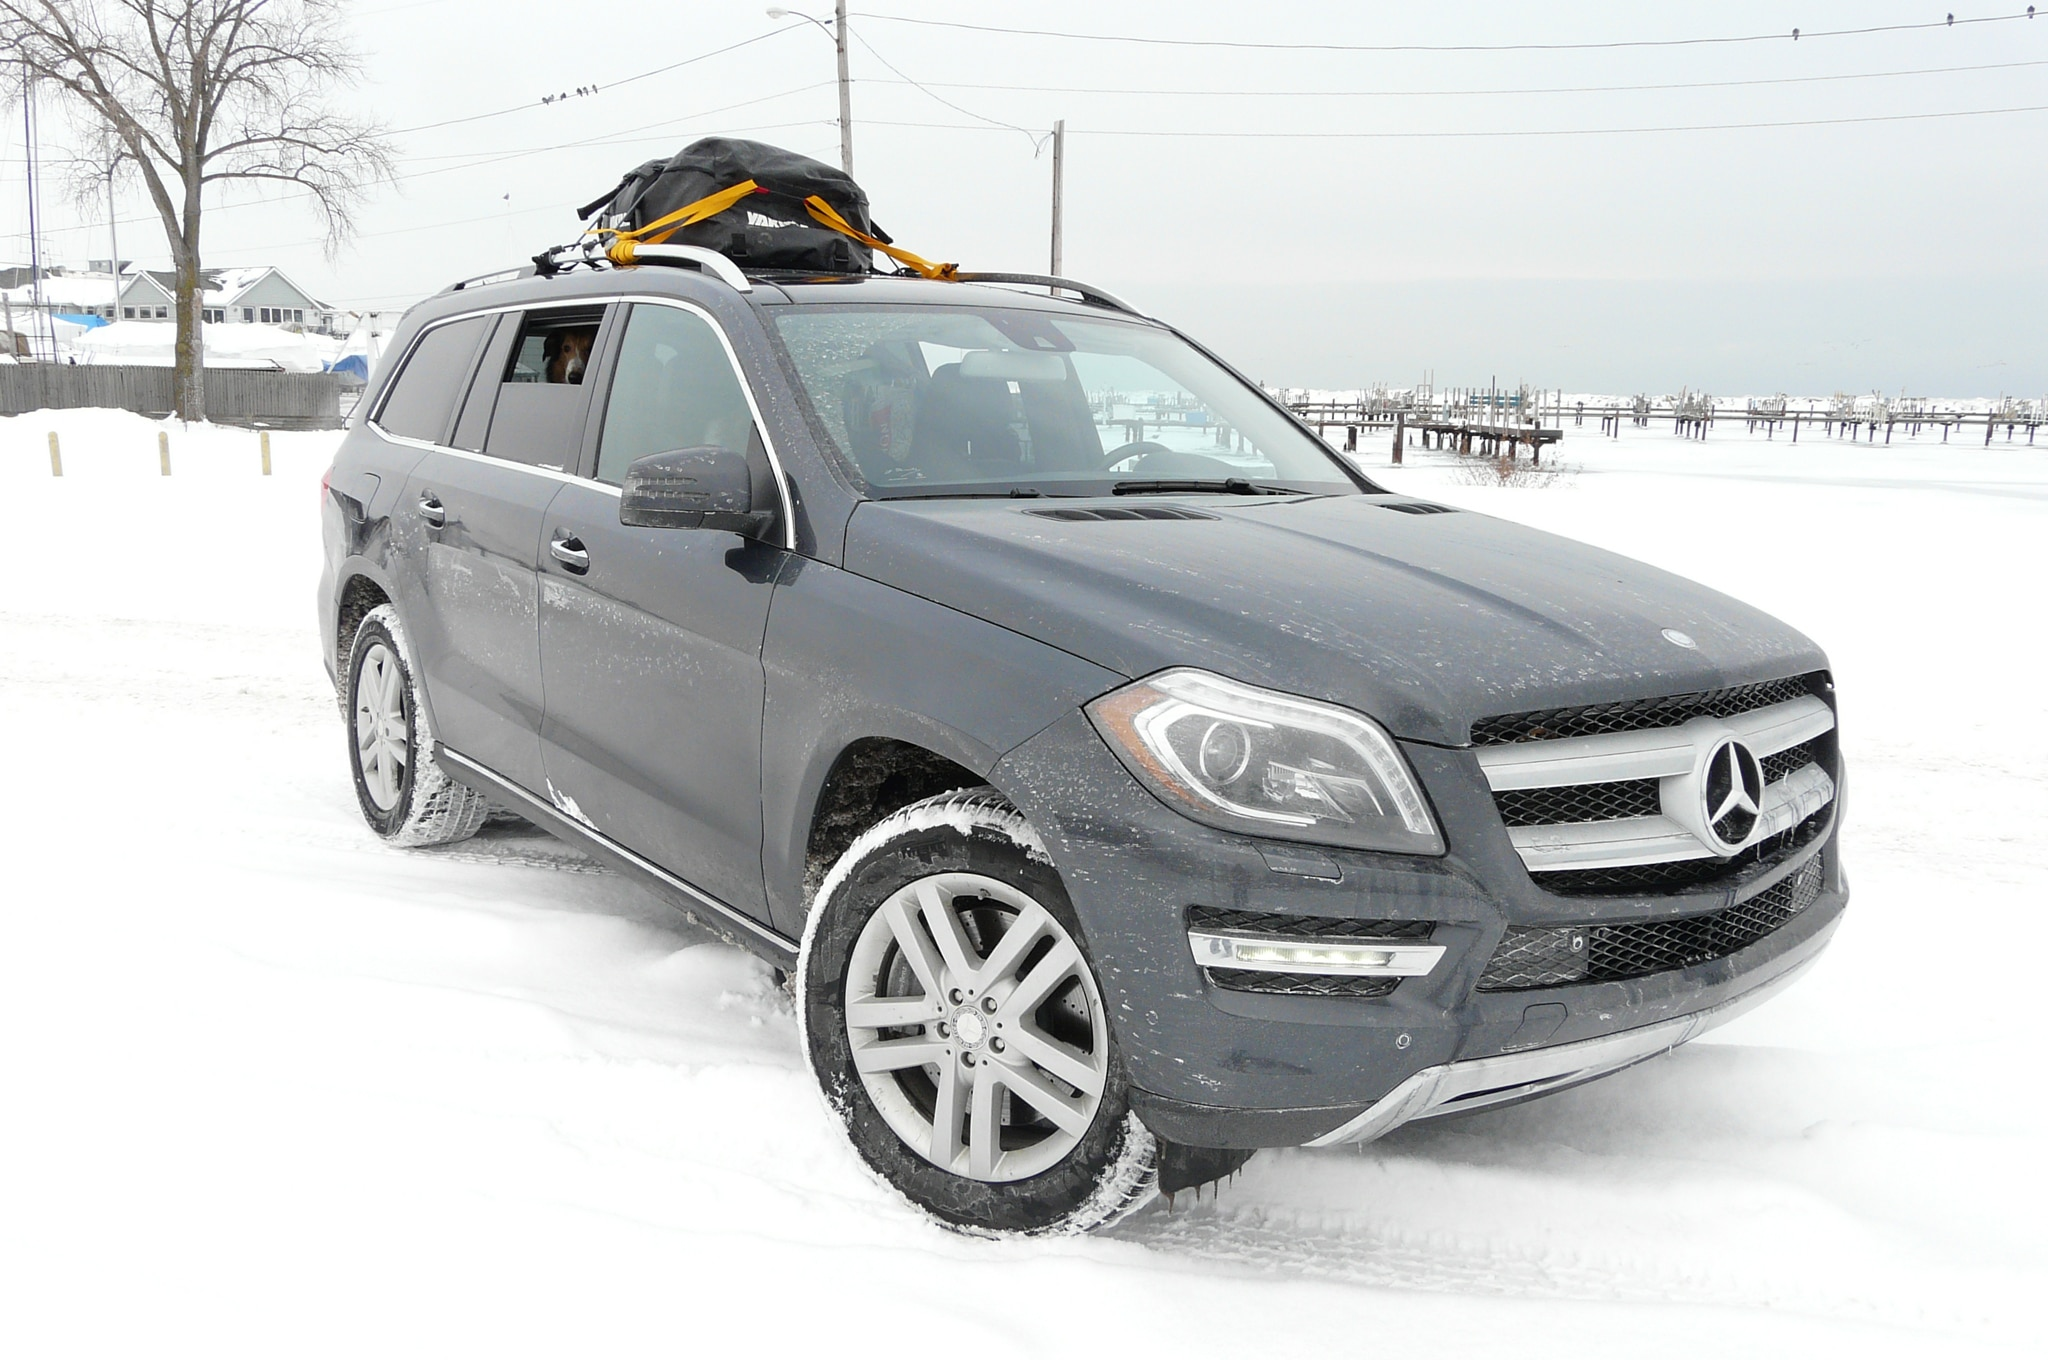 2013-mercedes-benz-gl450-four-seasons-6-front-three-quarter.JPG Interesting Info About 2013 Mercedes Gl450 for Sale